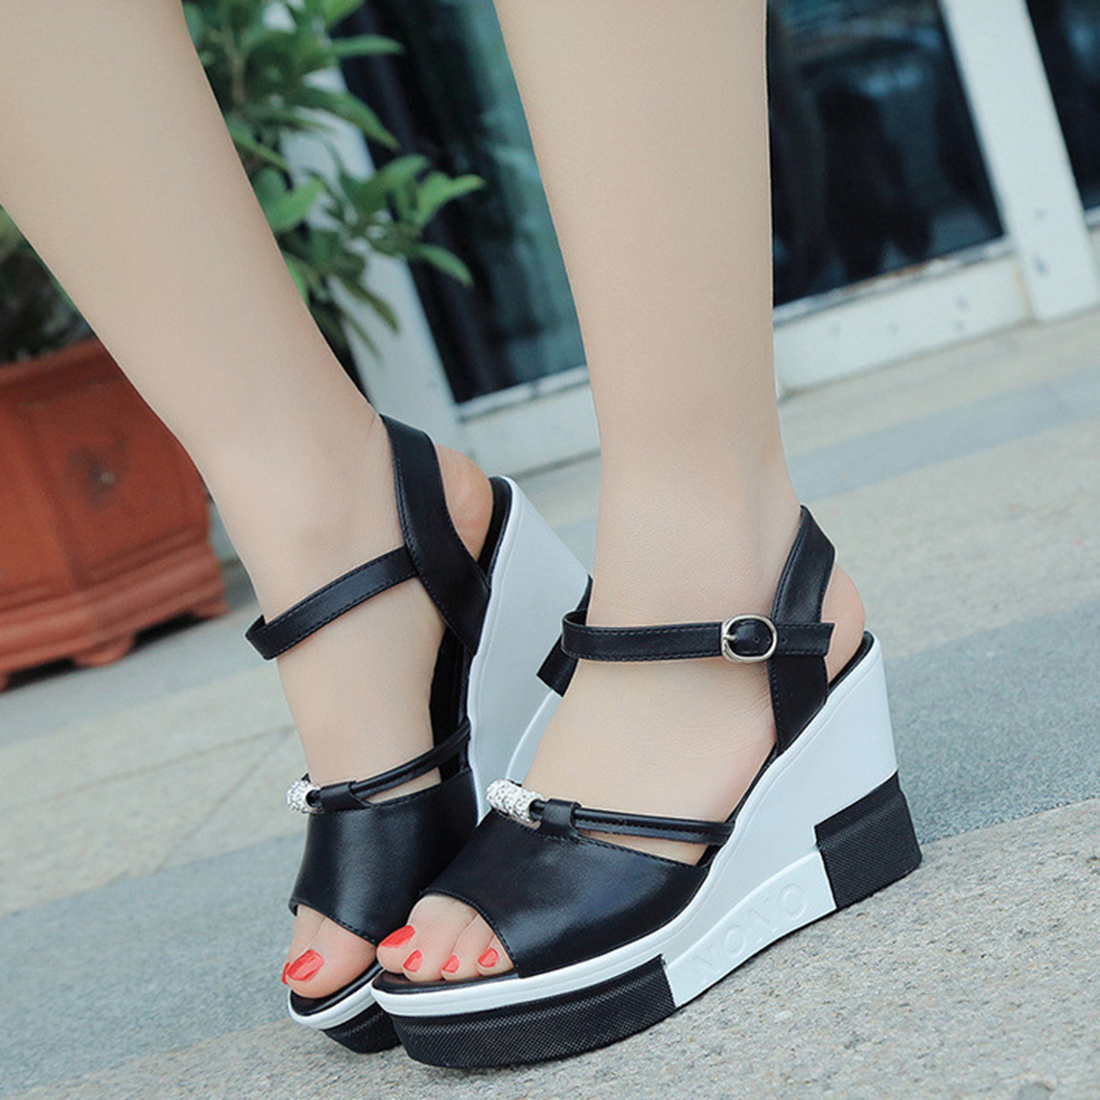 Summer shoes woman Platform Sandals Women Soft Leather Casual Open Toe Gladiator wedges Women Shoes zapatos mujer 2017 gladiator summer shoes woman platform sandals women flats soft leather casual open toe wedges sandals women shoes r18